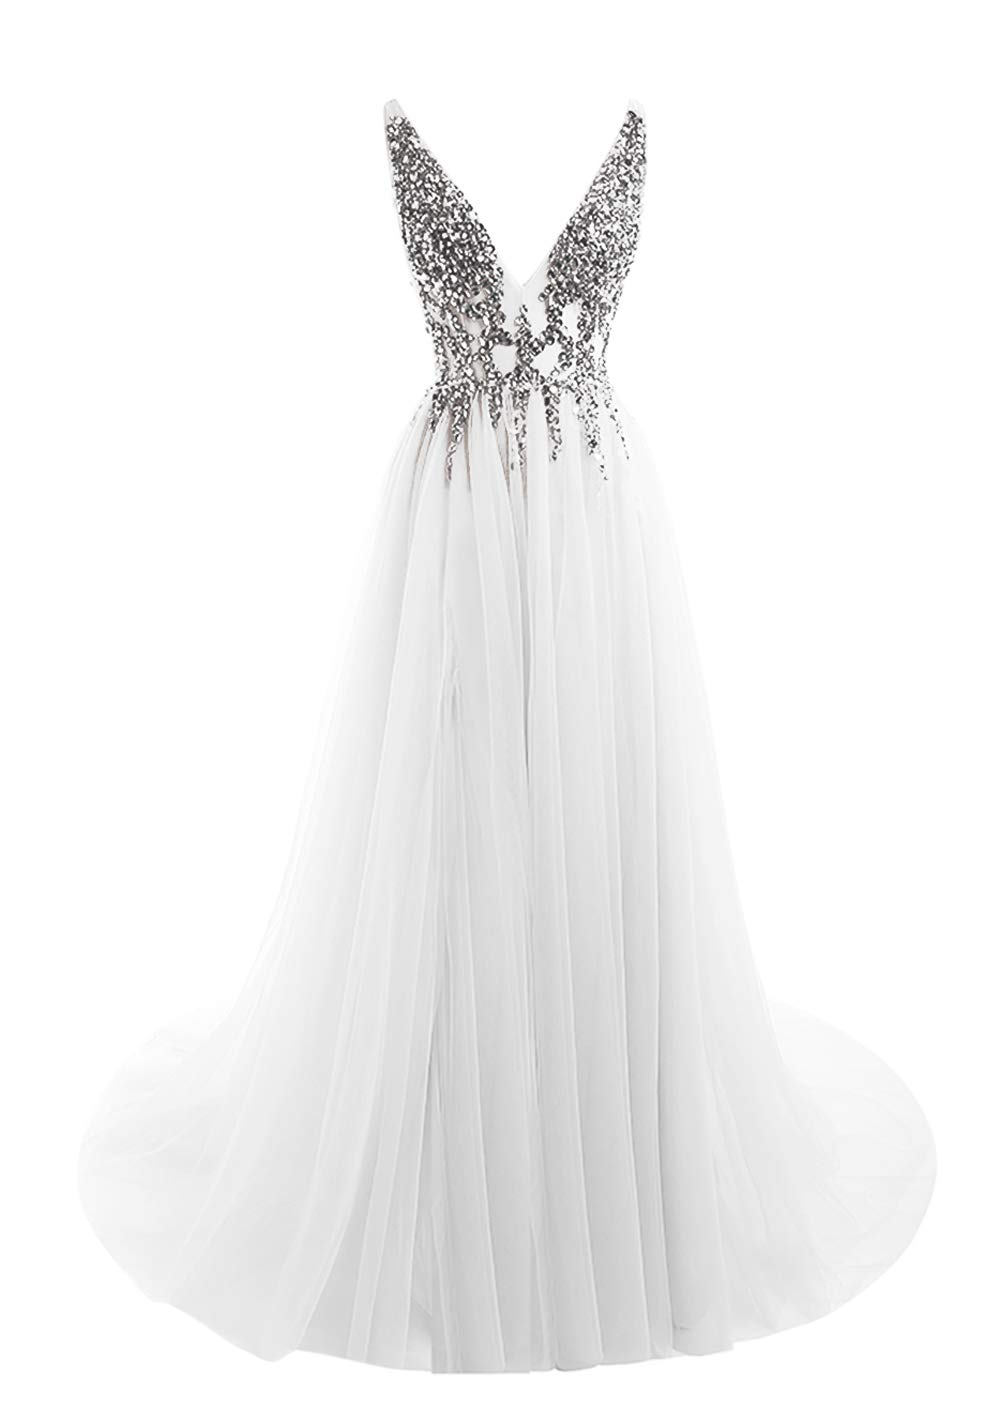 Prom Dresses Sexy Deep V Neck Sequins Beads Tulle and Lace High Split Long Evening Dresses Bridal Wedding Dress product image